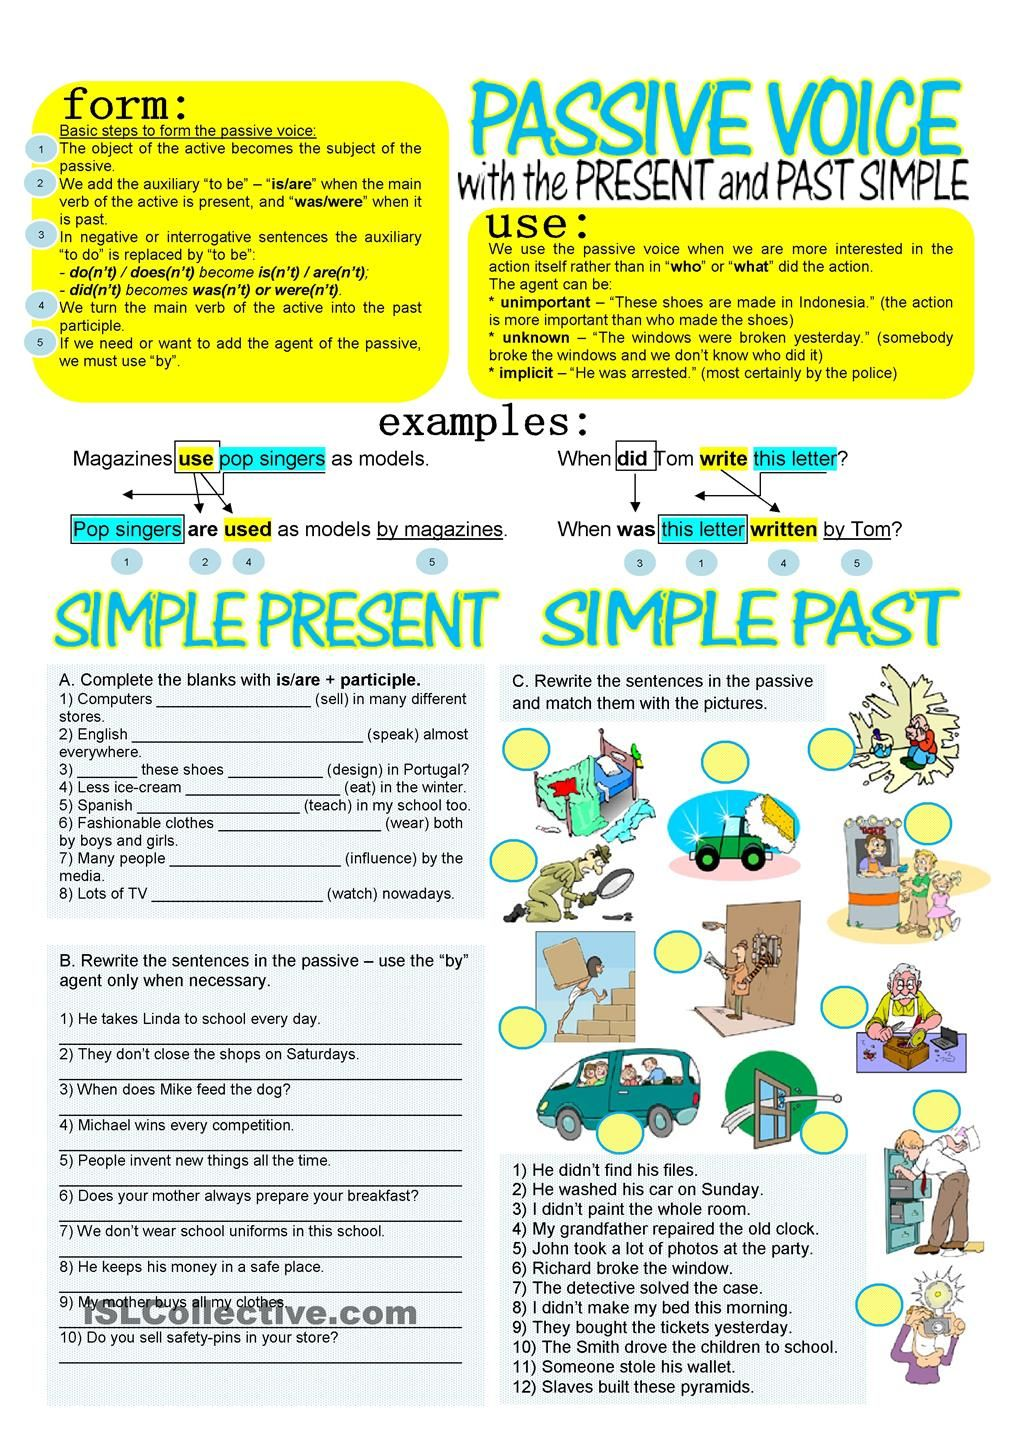 PASSIVE VOICE WITH SIMPLE PRESENT AND PAST | senior classes ...